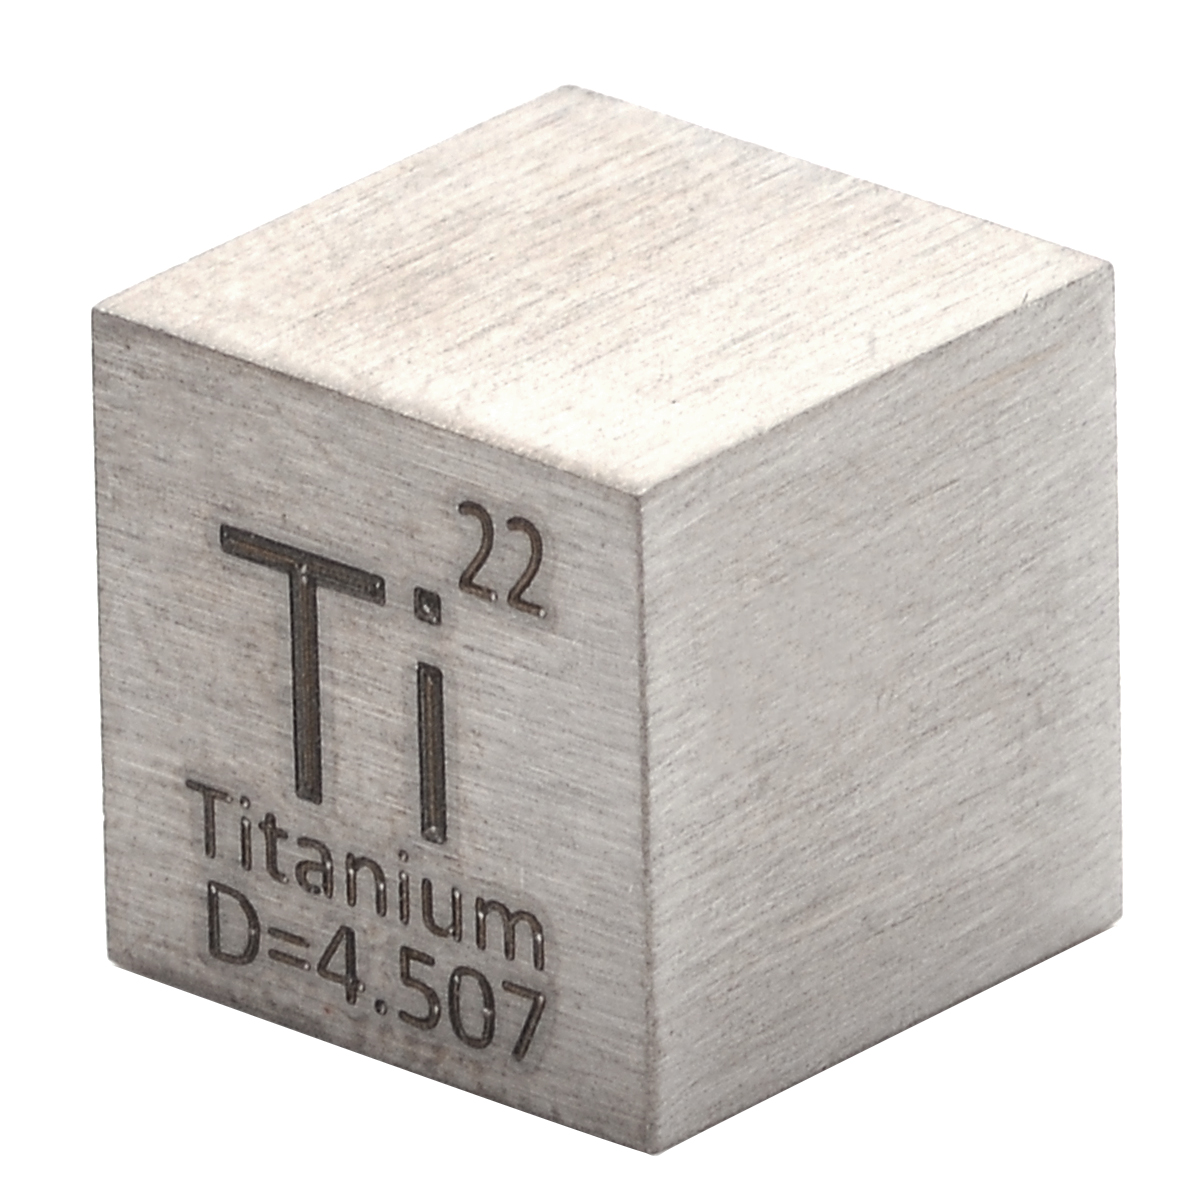 99.5% High Purity Metal Ti Block Pure Titanium Cube Carved Element Periodic Table Wonderful Collection Class Supplies 10*10*10mm